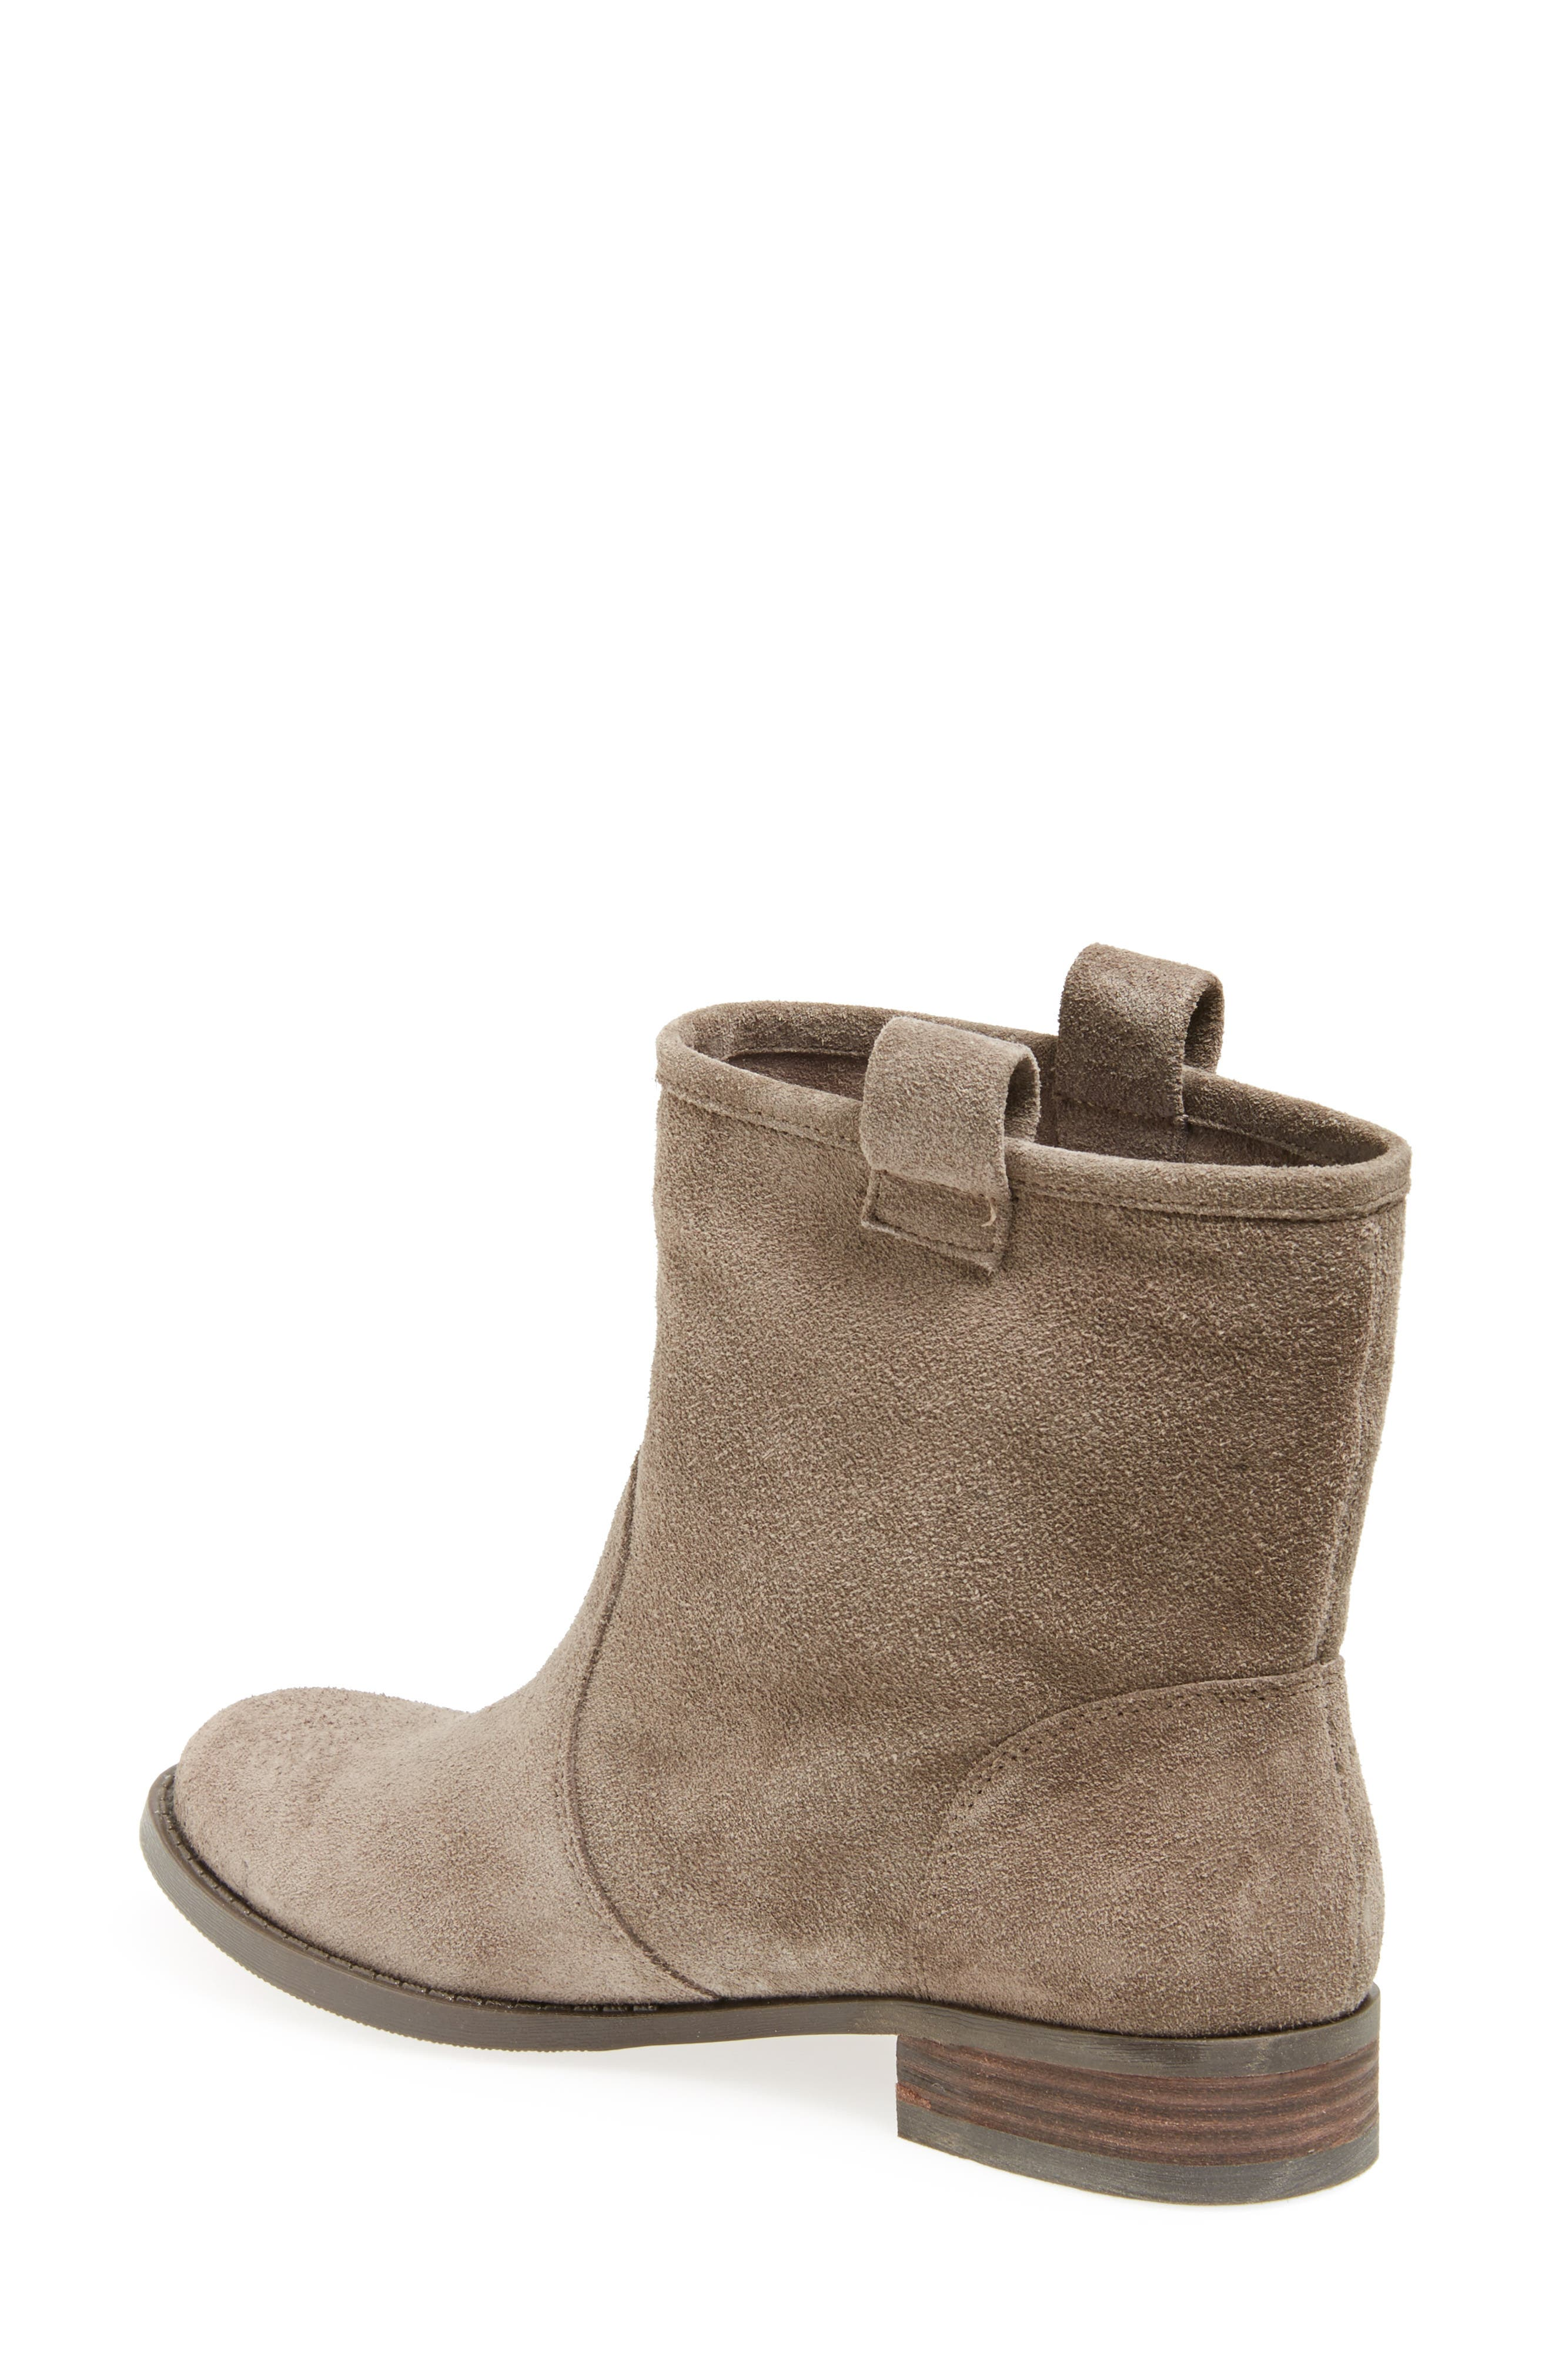 SOLE SOCIETY, 'Natasha' Boot, Main thumbnail 1, color, 021